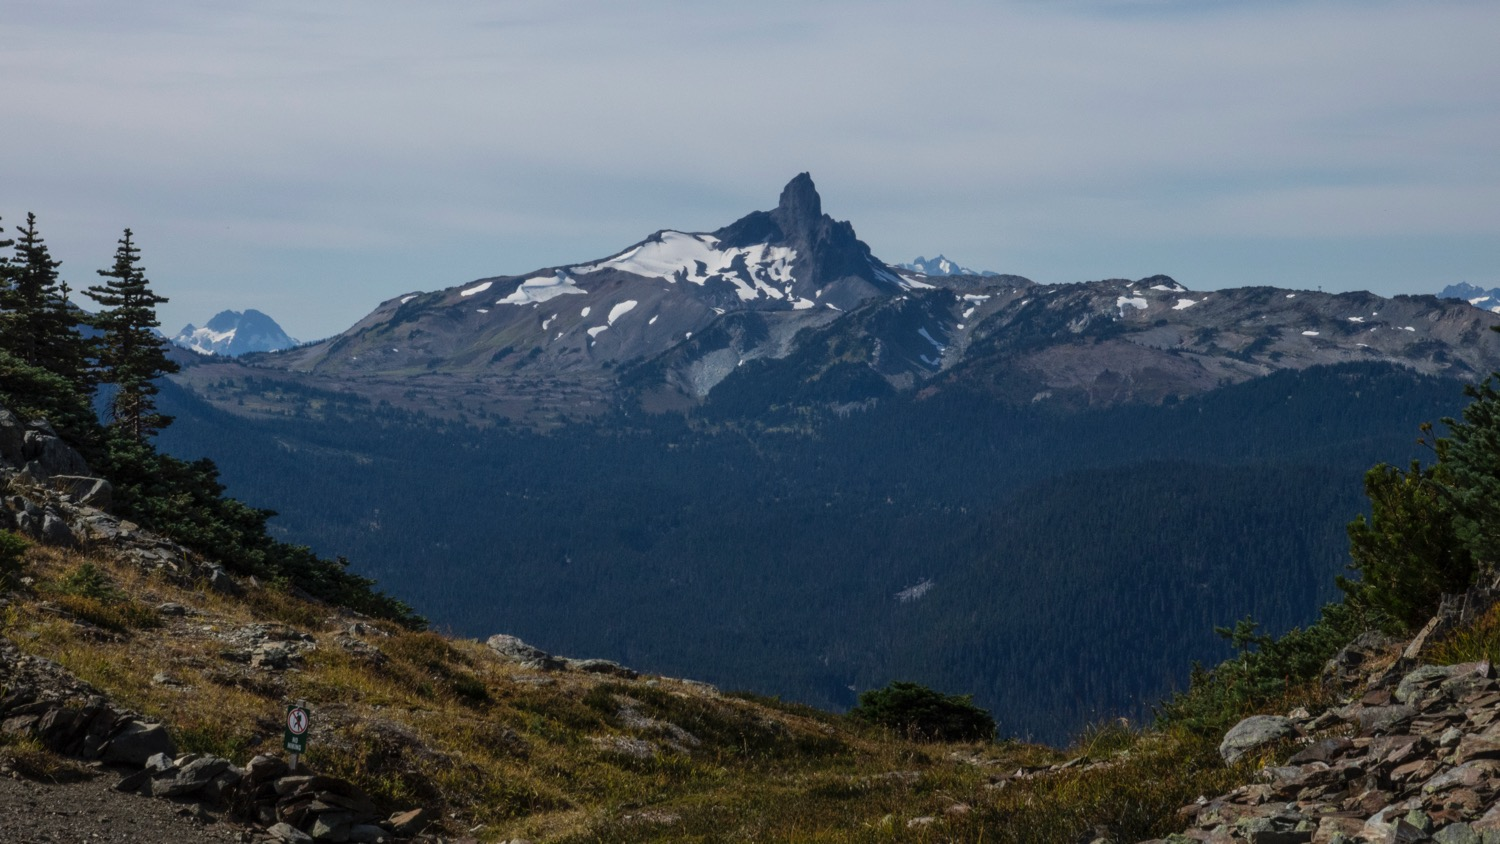 A great view out to Black Tusk